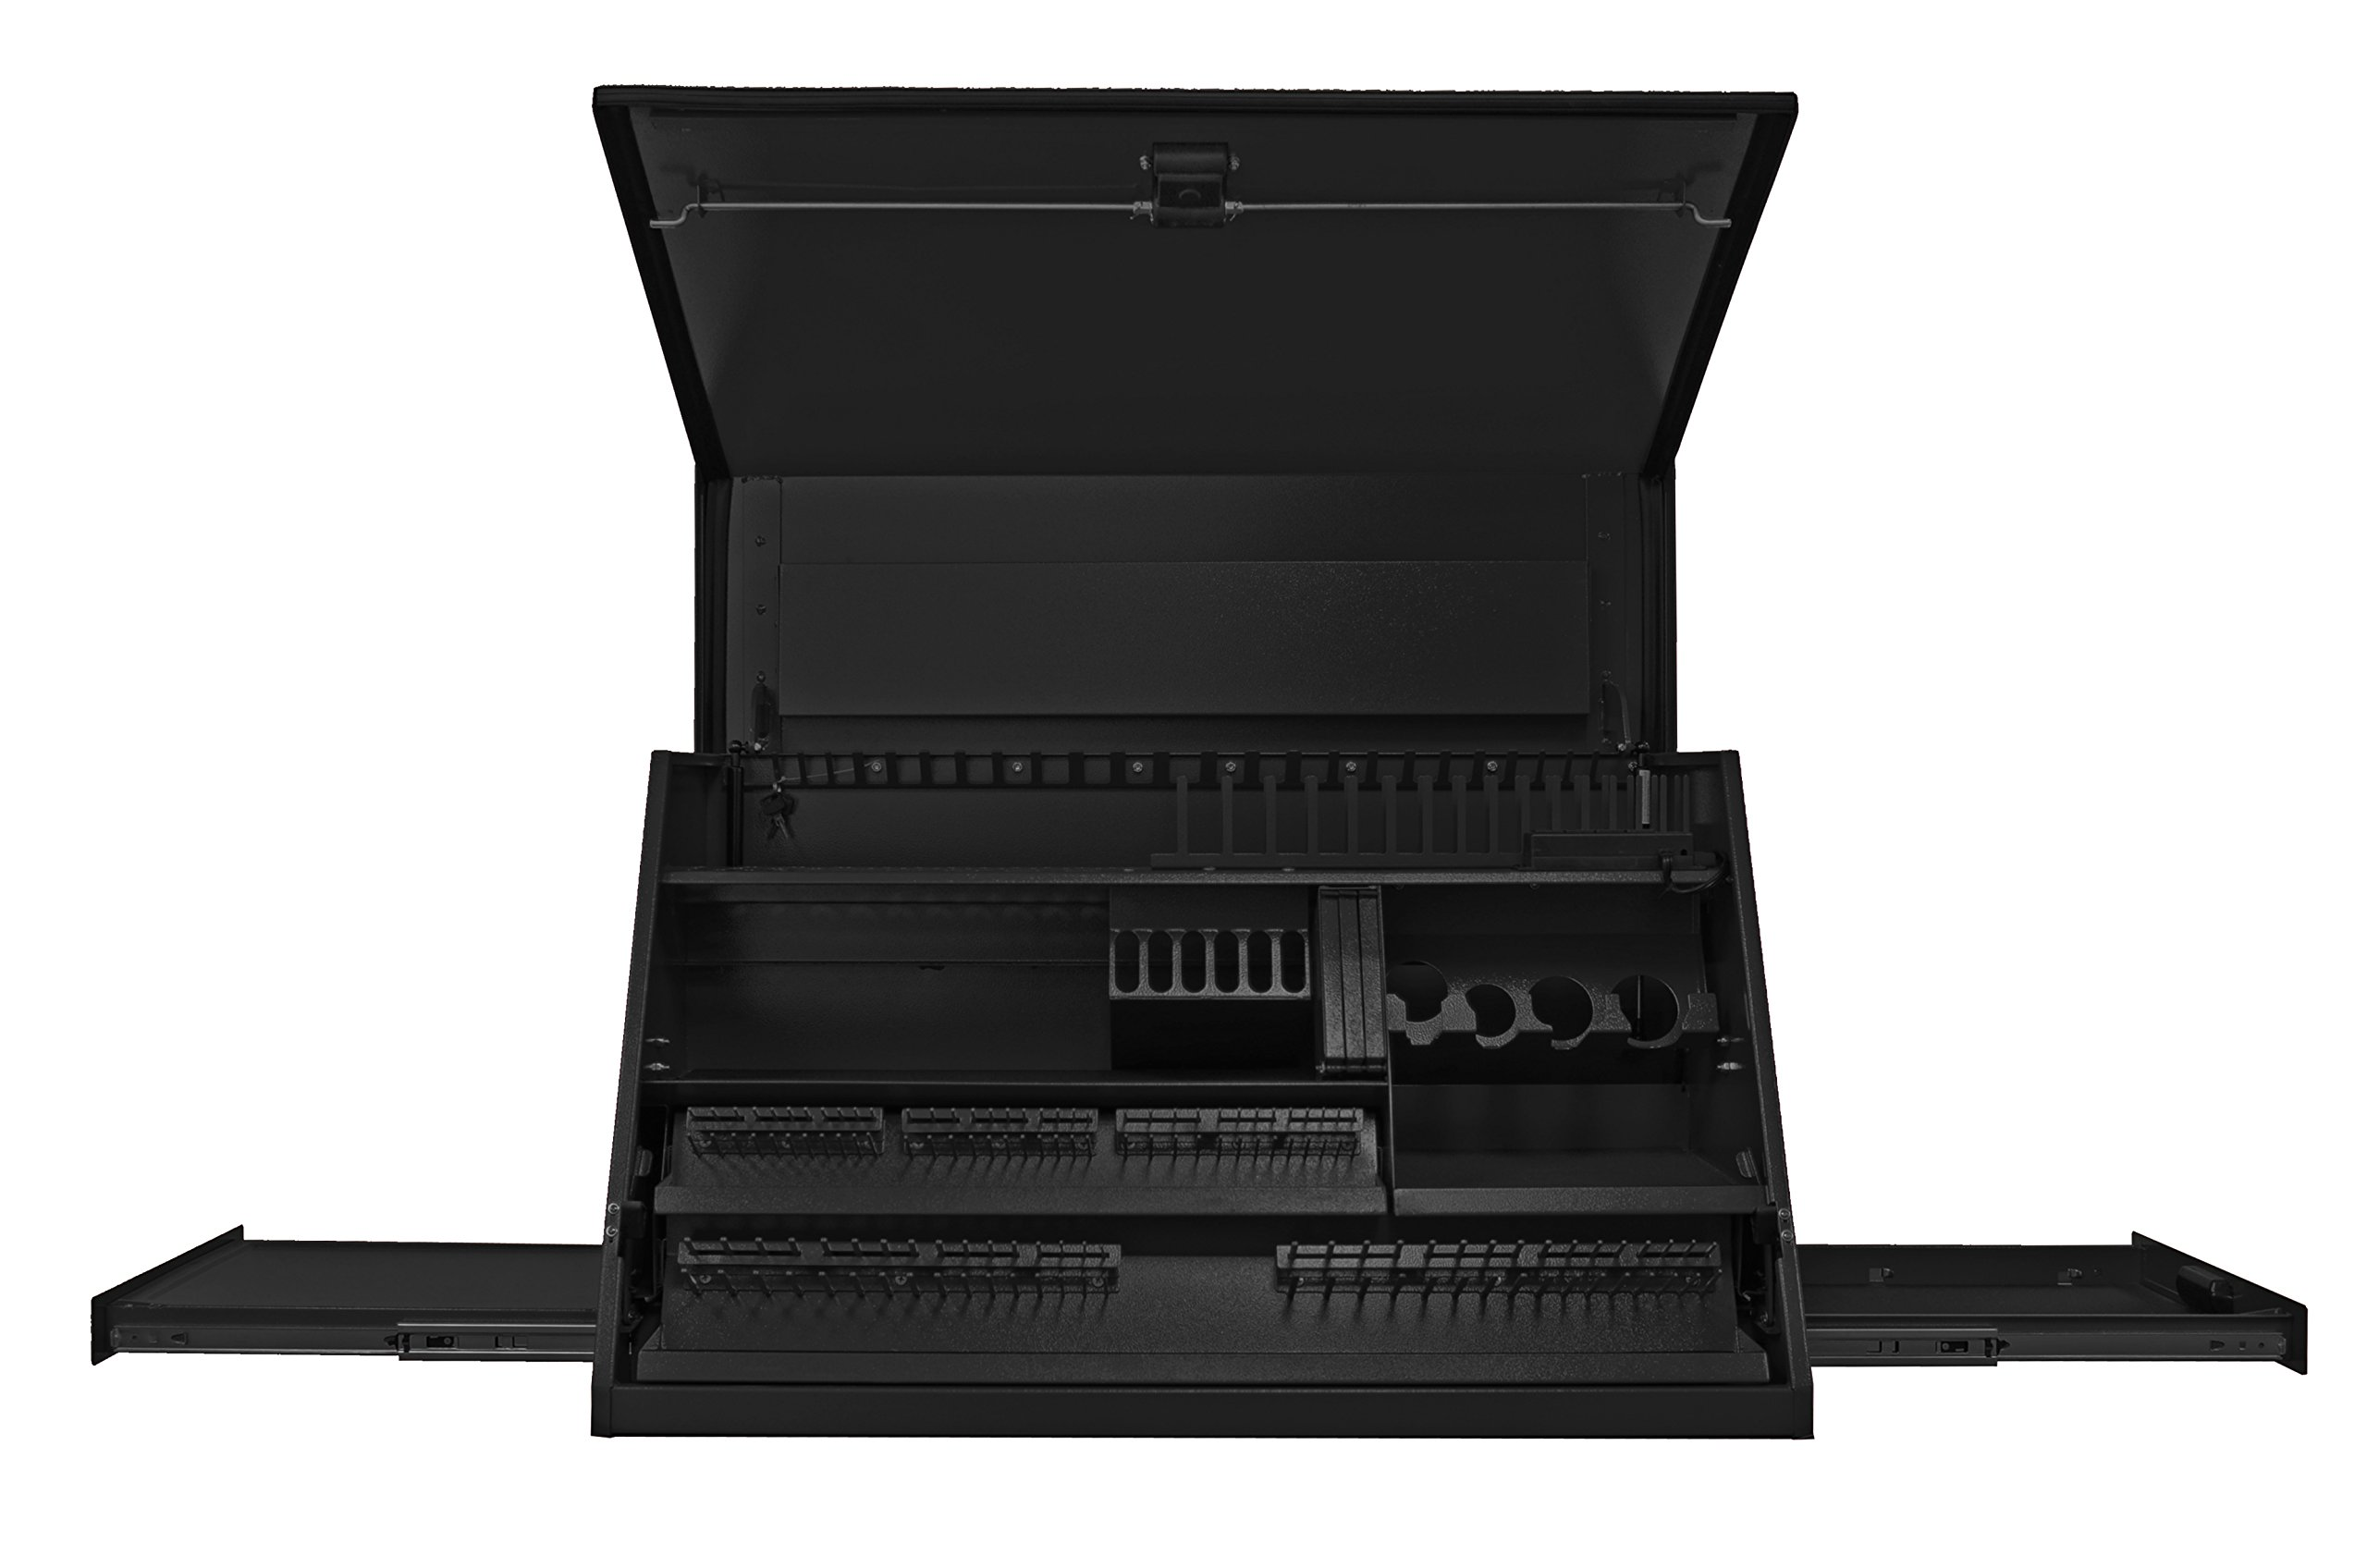 Extreme Tools PWS4105TXBK 3-Drawer 1-Shelf Deluxe Extreme Portable Workstation with Ball Bearing Slides, 41-Inch, Black Textured Finish